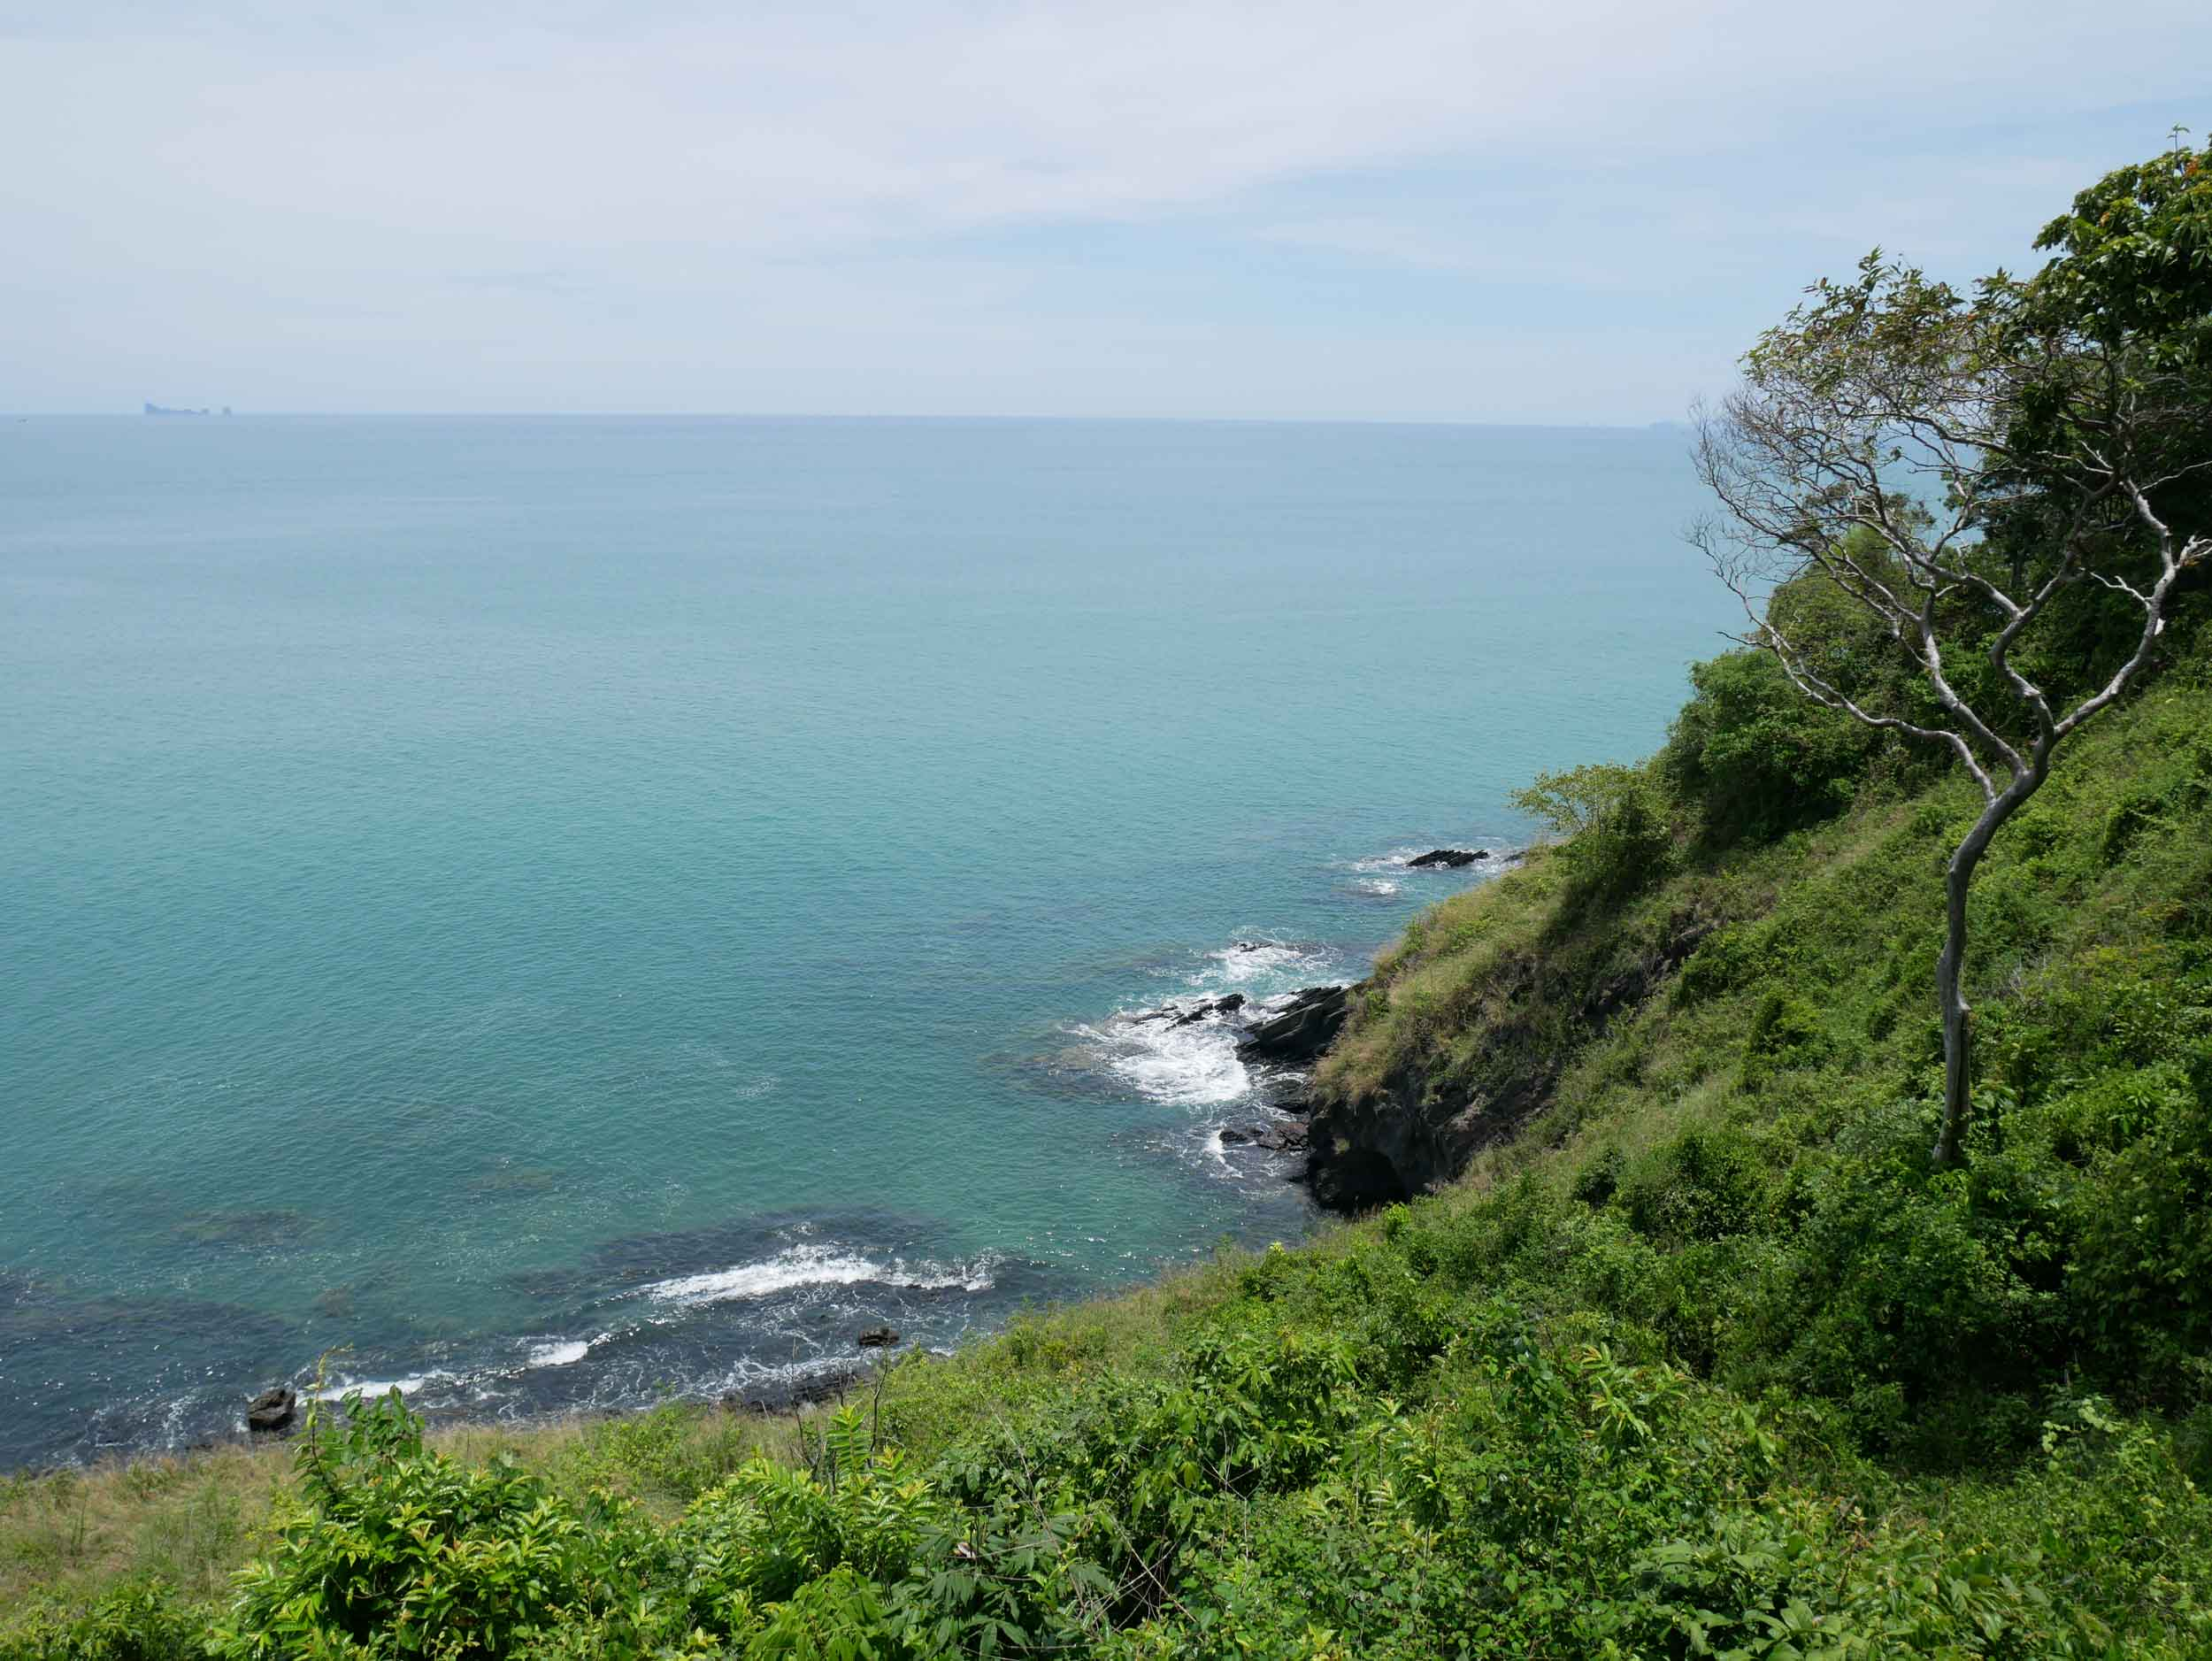 View from Noon Restaurant, which overlooks Nui Bay near the southern tip of Koh Lanta.